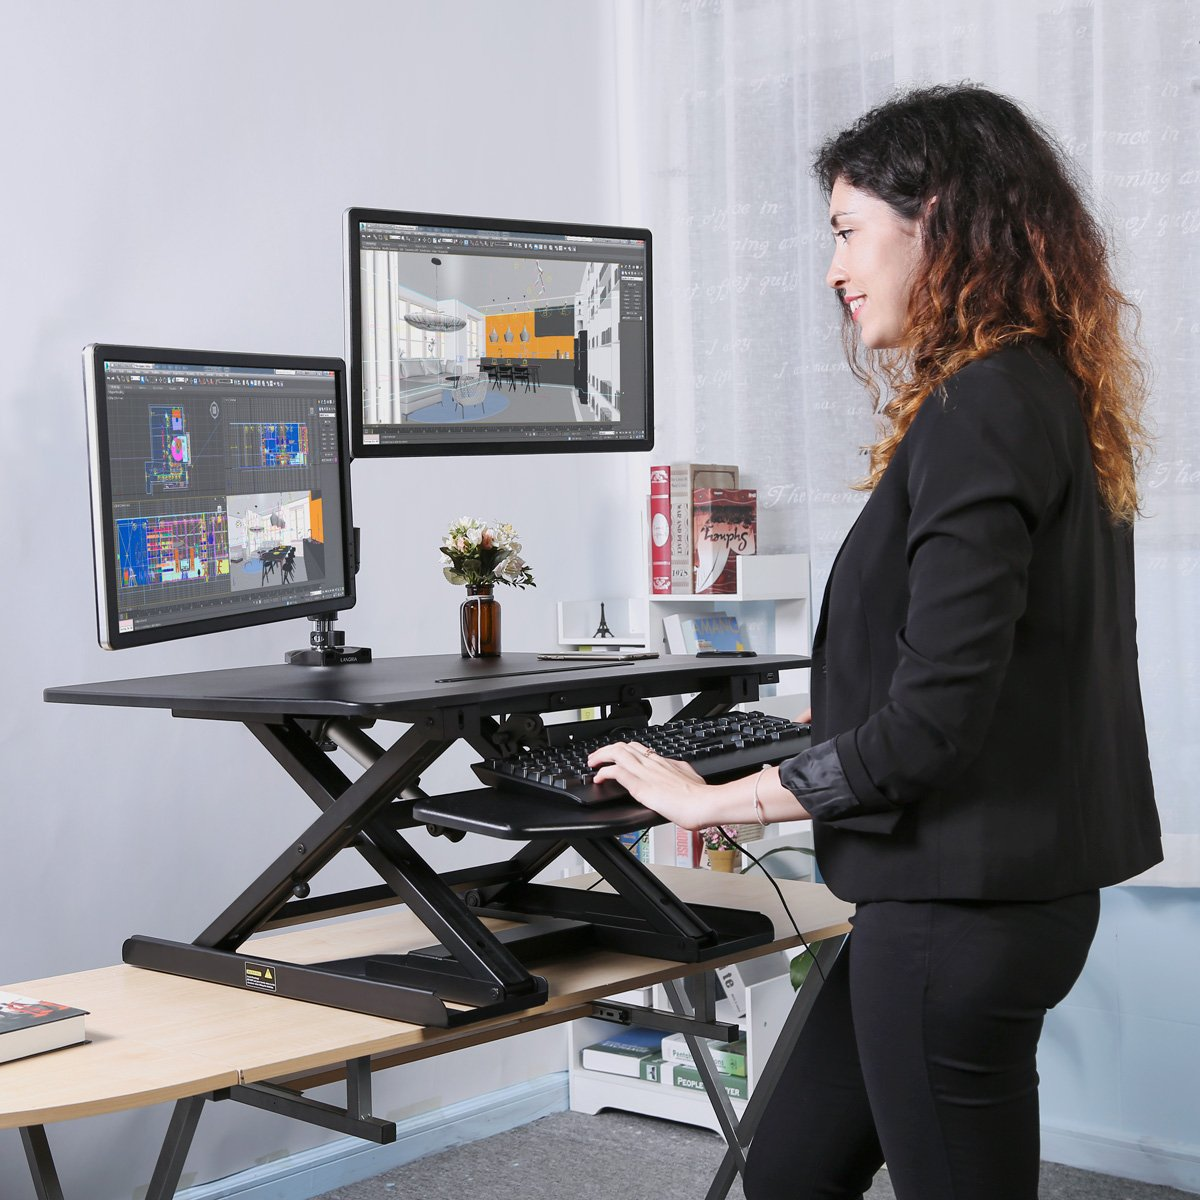 "LANGRIA Electric Standing Desk, Height Adjustable Stand up Desk Converter, Ergonomic 32""x 25"" Large Desktop Sit Stand Workstation X-Frame Fits Two Monitors USB Charging iPhone iPad Stand Black"